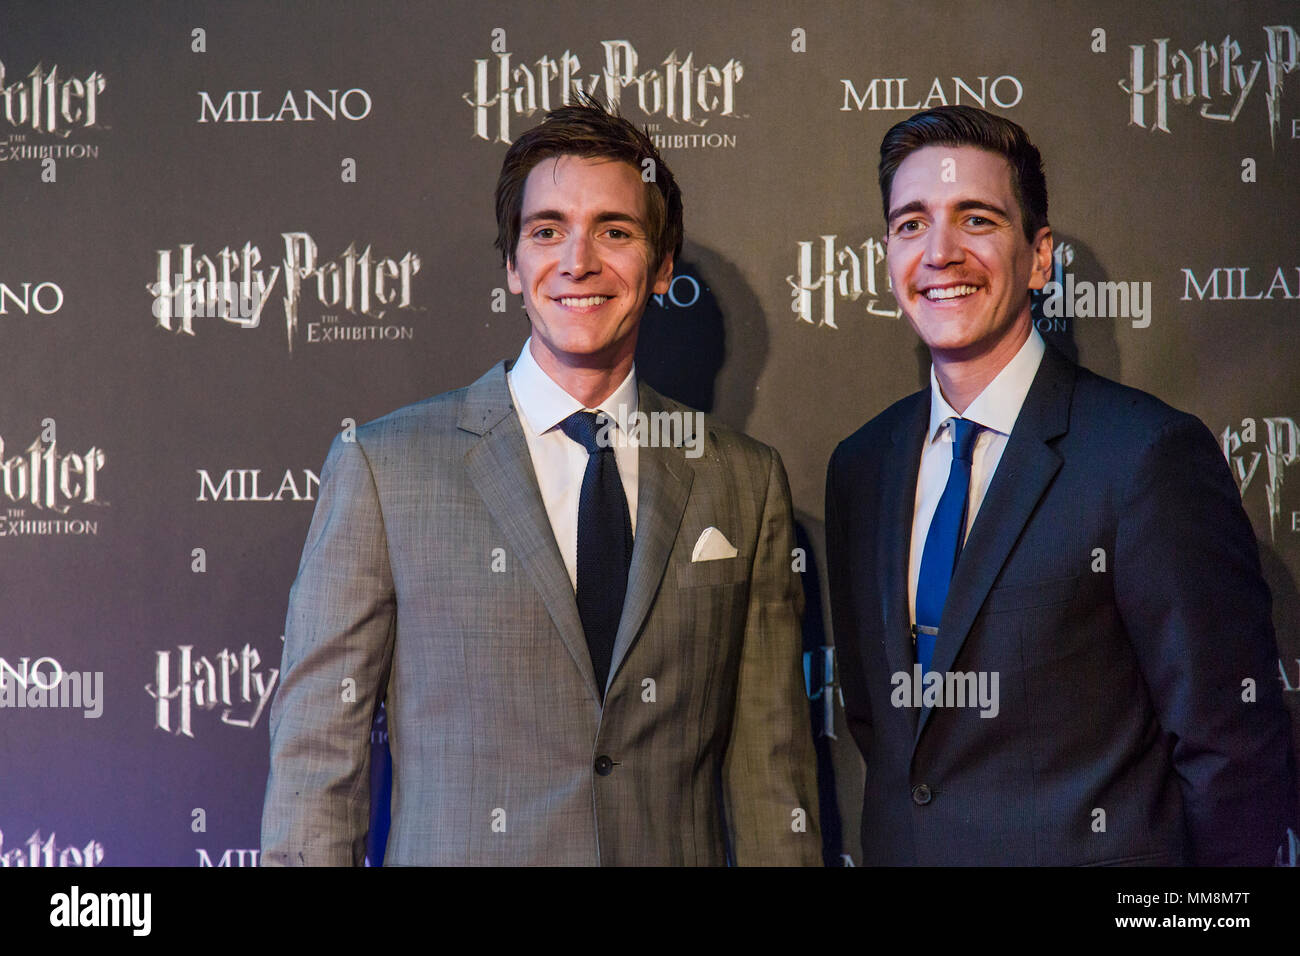 Milan, Italy  09th May, 2018  James and Oliver Phelps, the